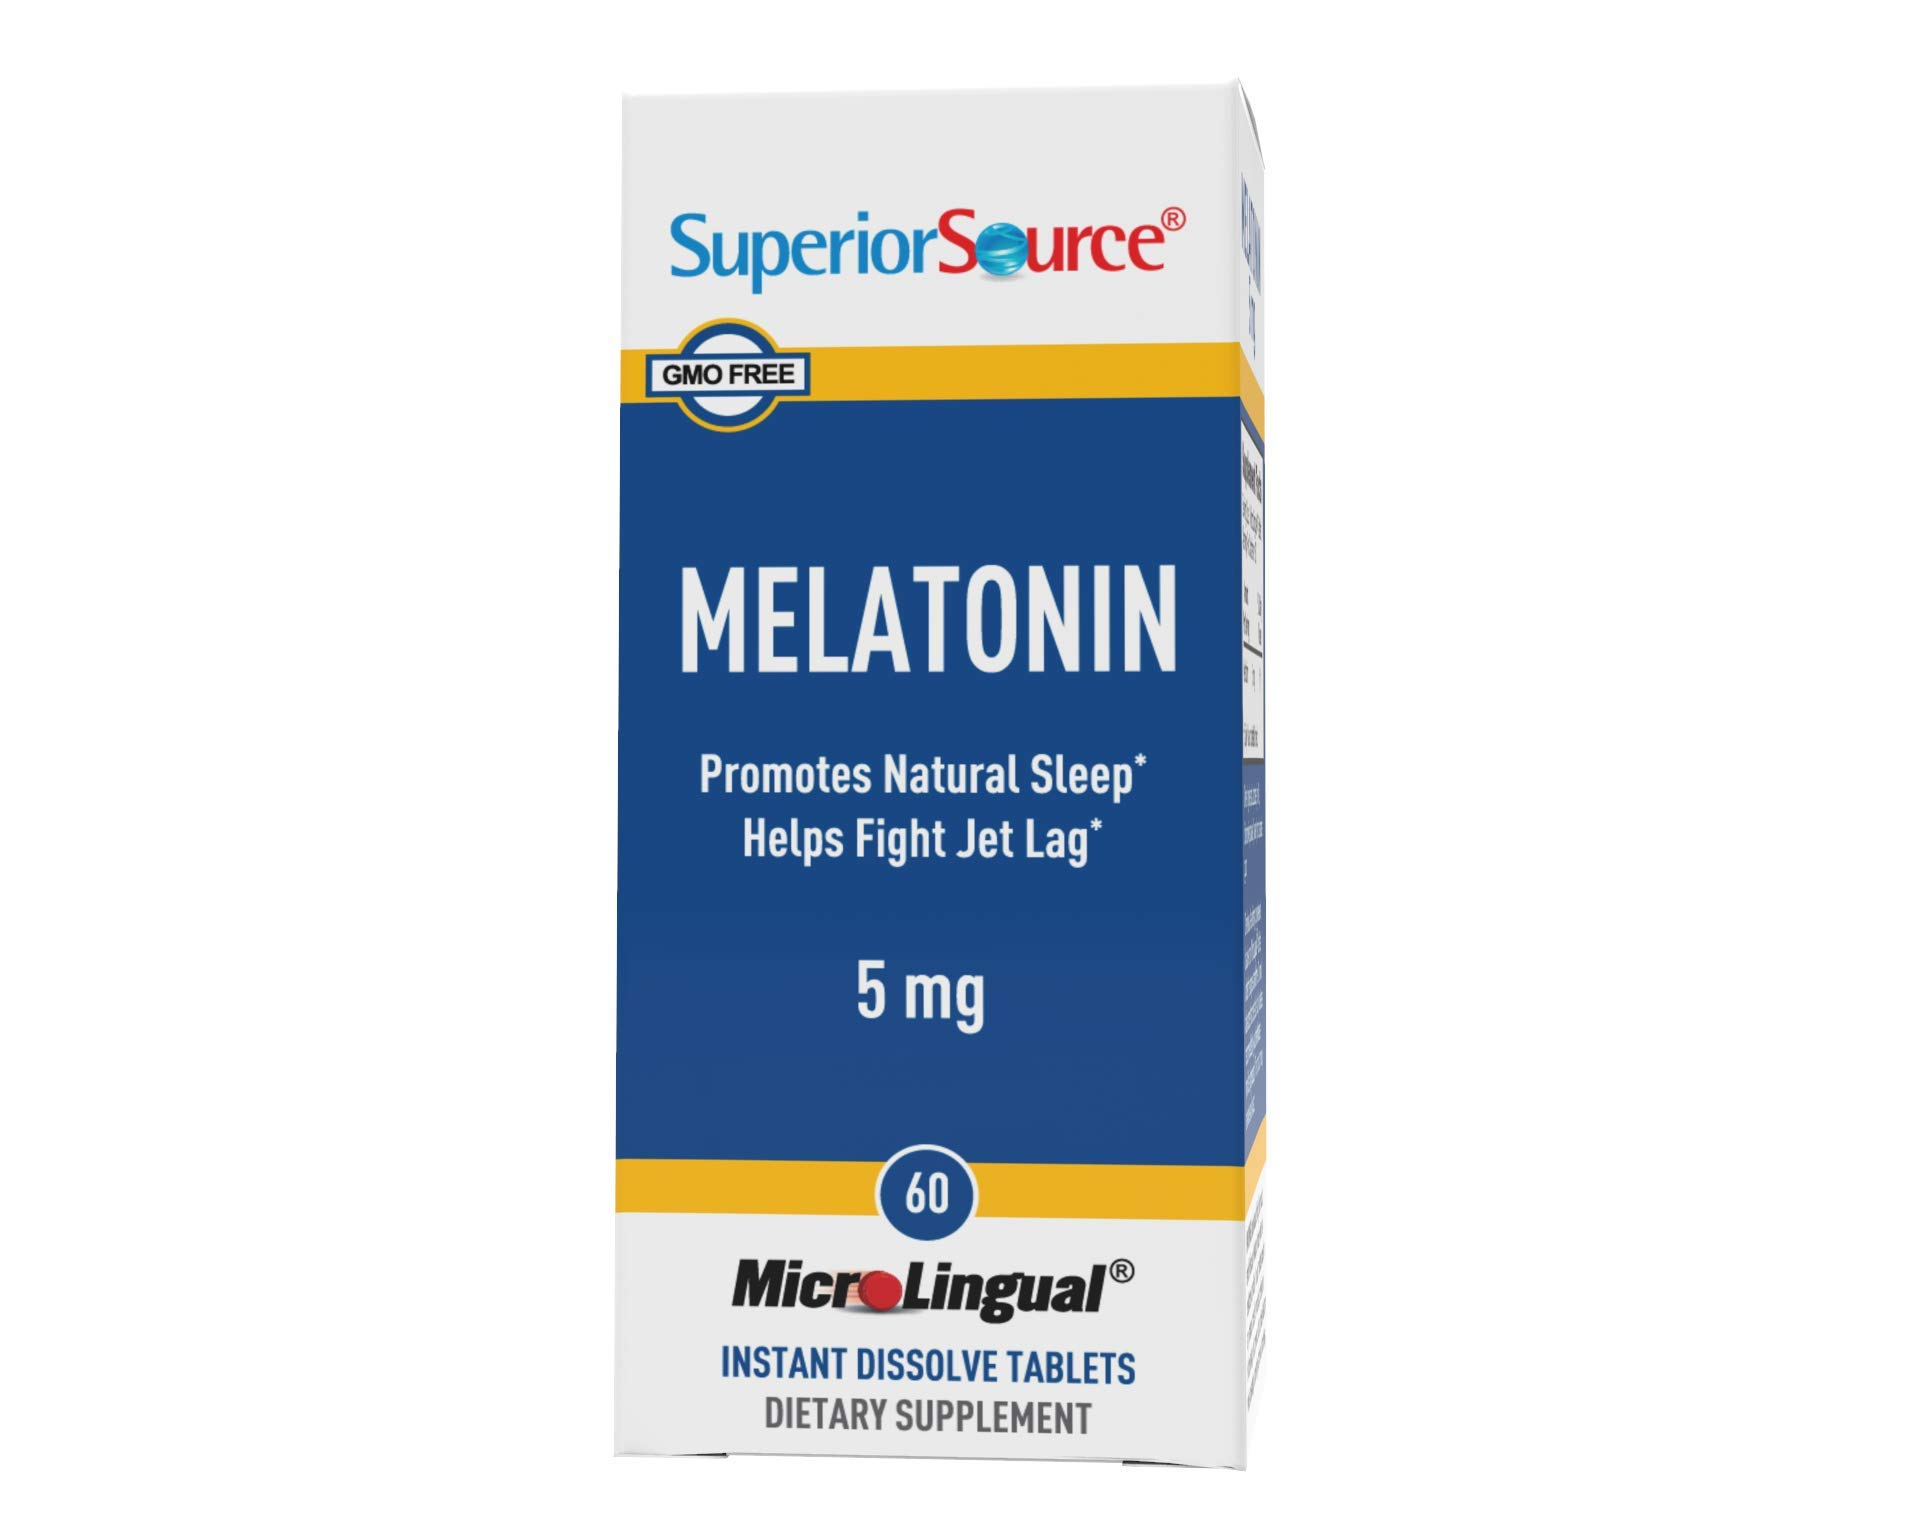 Superior Source Melatonin 5 mg Under The Tongue Quick Dissolve Sublingual Tablets, 60 Count, with Chamomile, Non-Addictive Sleep Aid, Sublingual Melatonin, Natural Sleeping Pills for Adults, Non-GMO